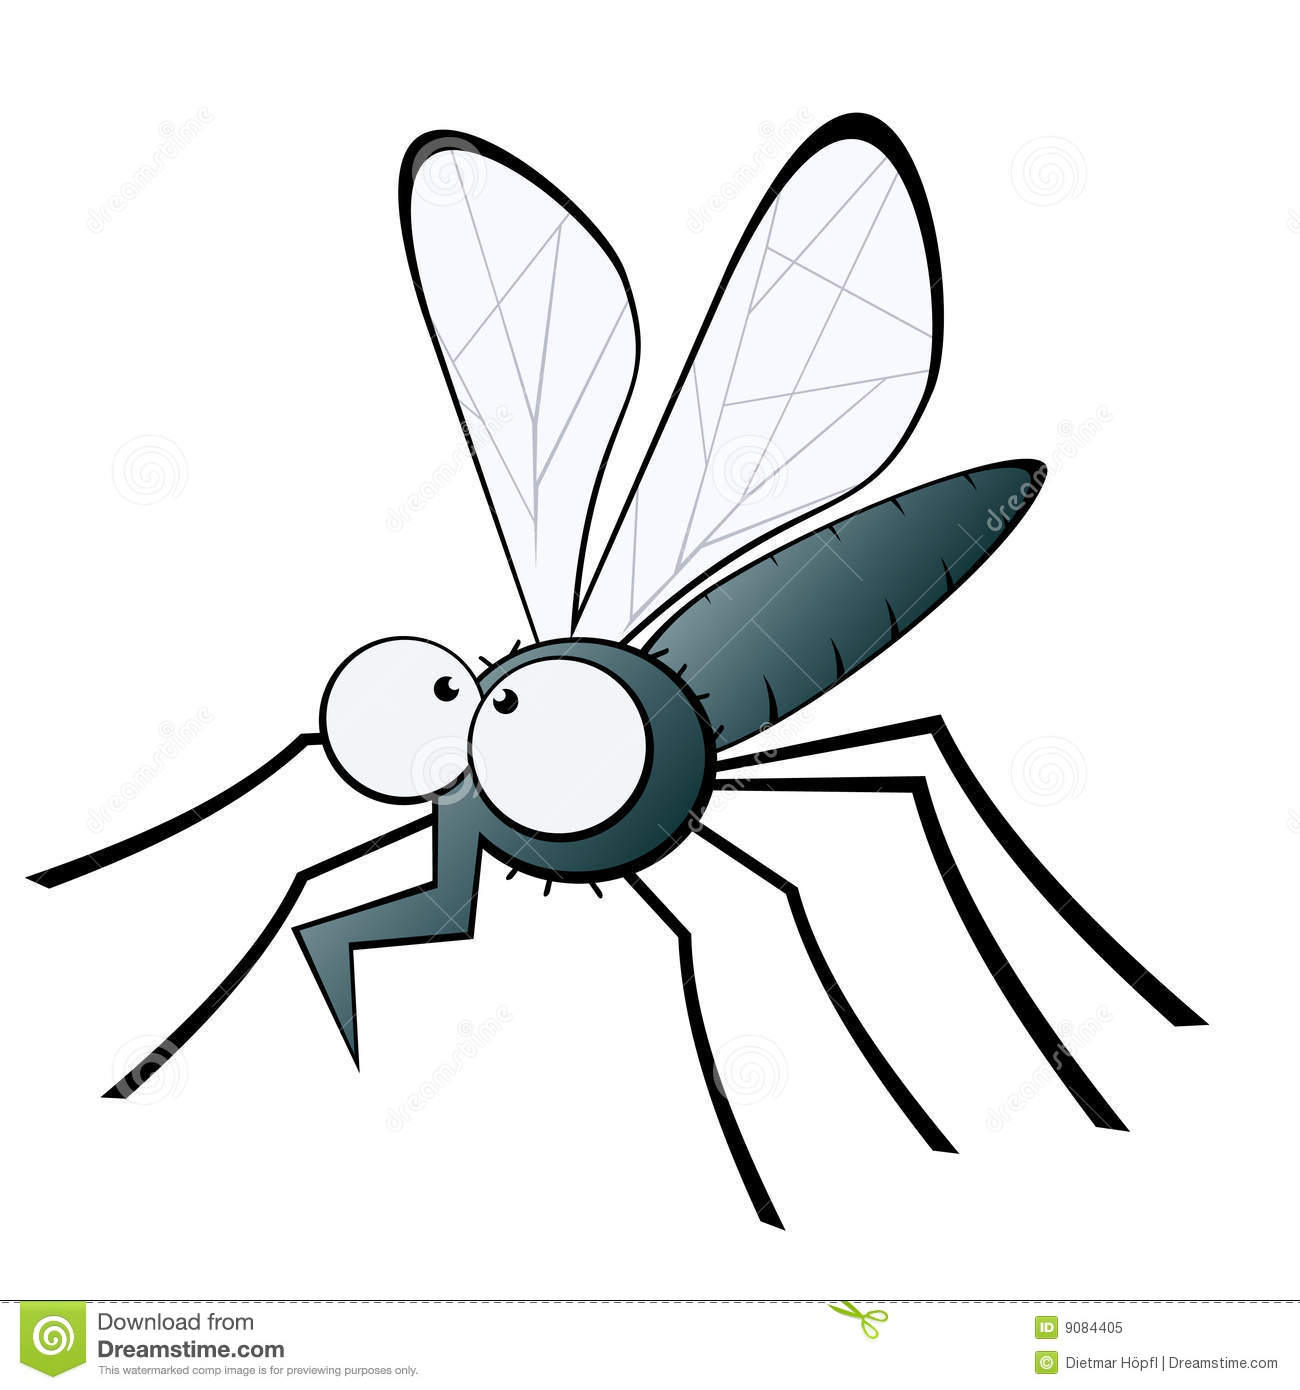 Midge clipart #19, Download drawings